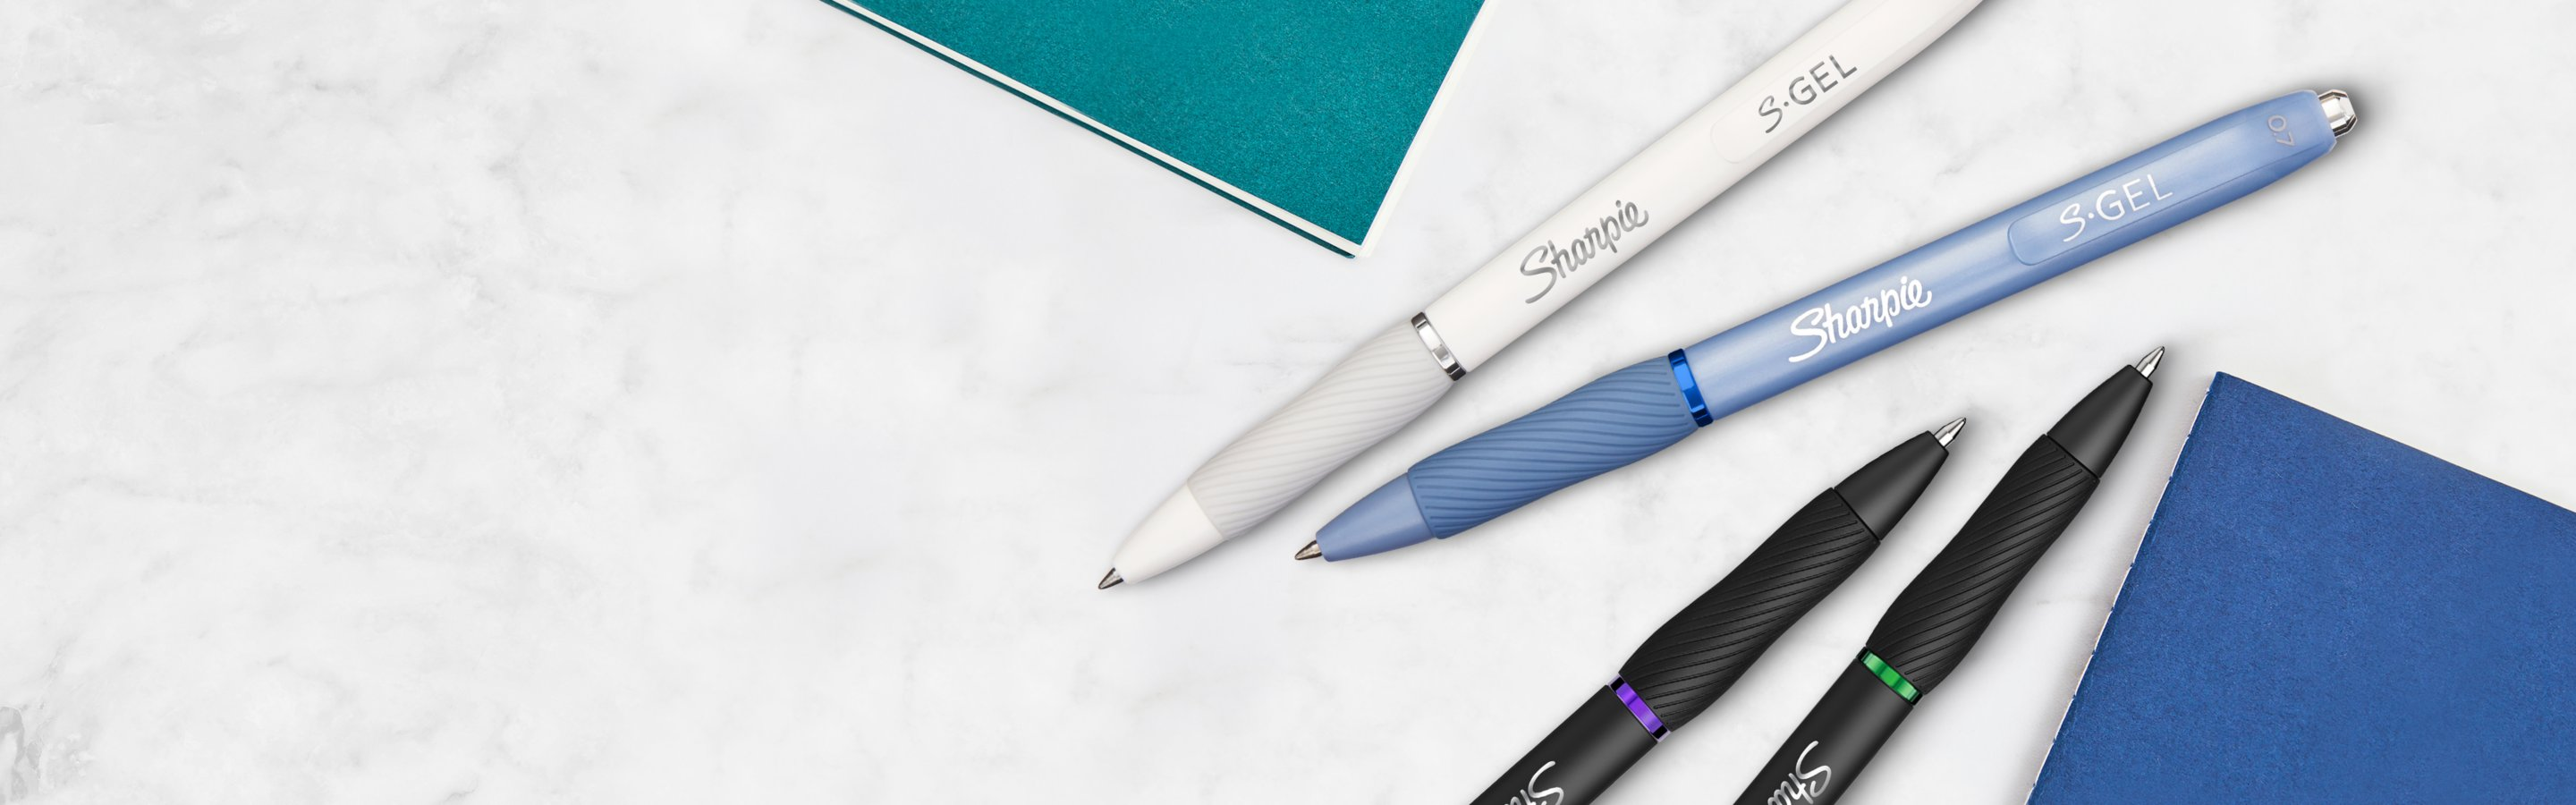 assorted writing pens